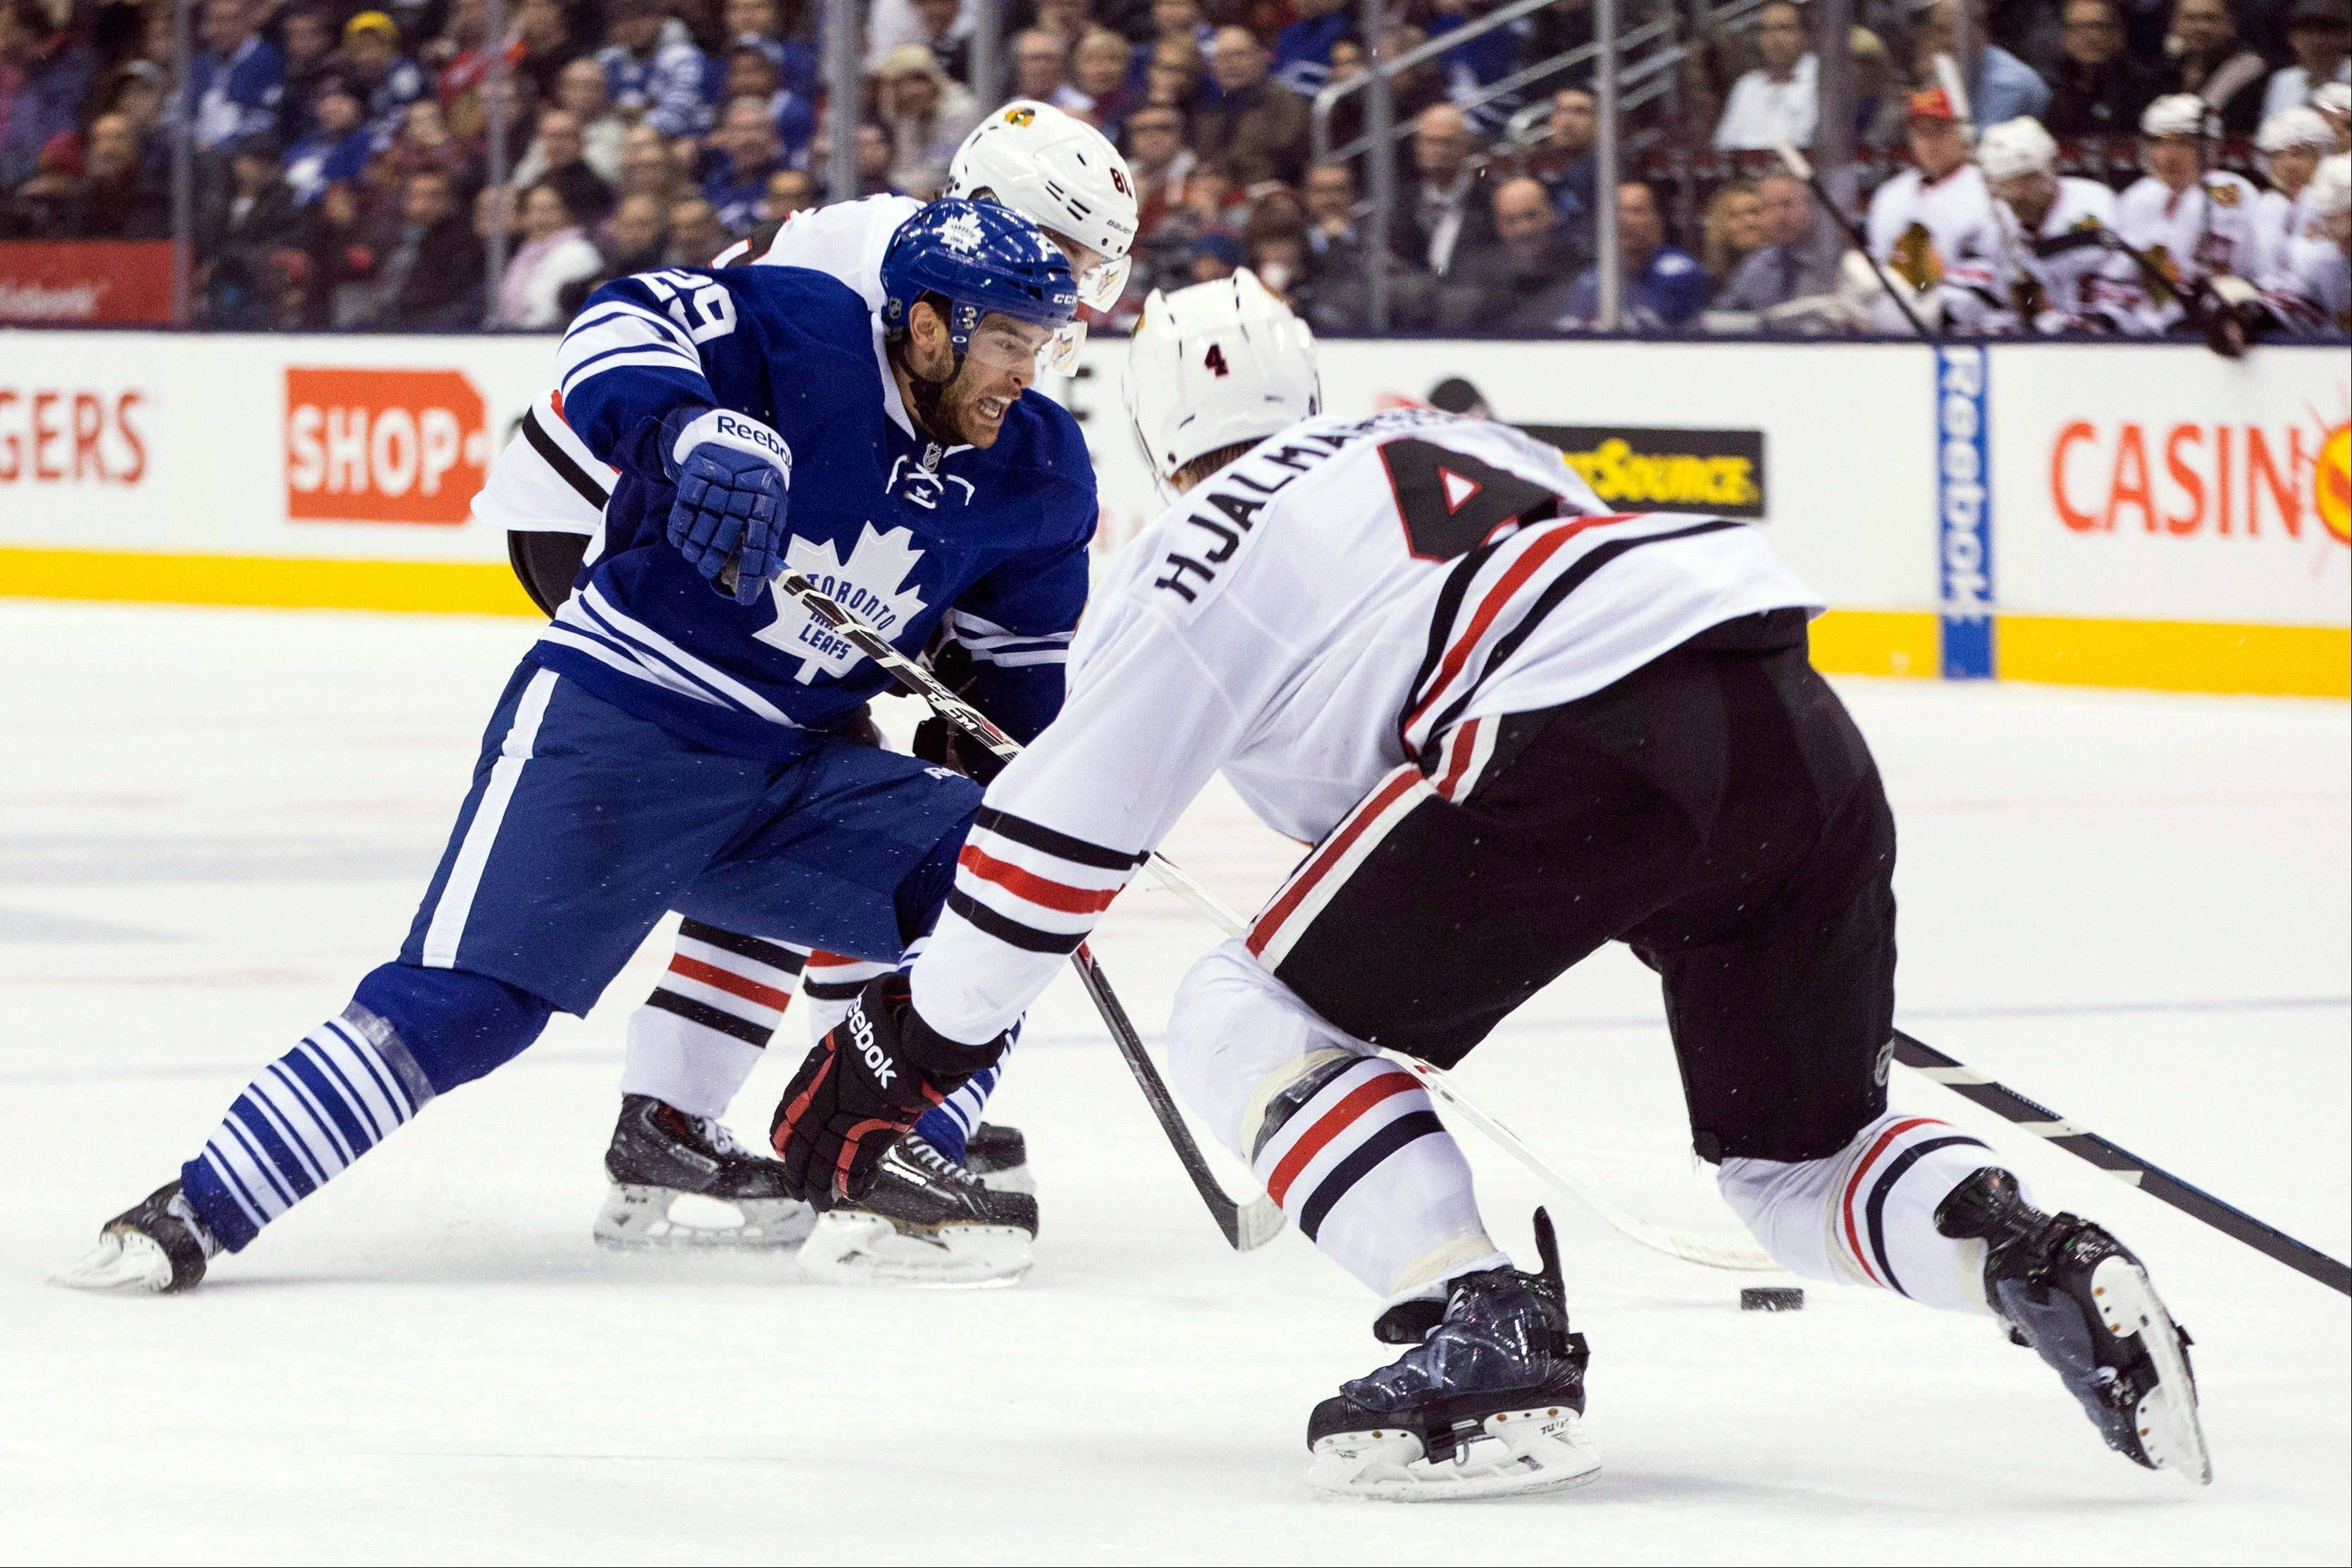 Toronto Maple Leafs' Jerry D'Amigo, left, battles for the puck with Chicago Blackhawks' Marian Hossa, back, as Niklas Hjalmarsson covers Saturday in Toronto. The Maple Leafs won 7-3.